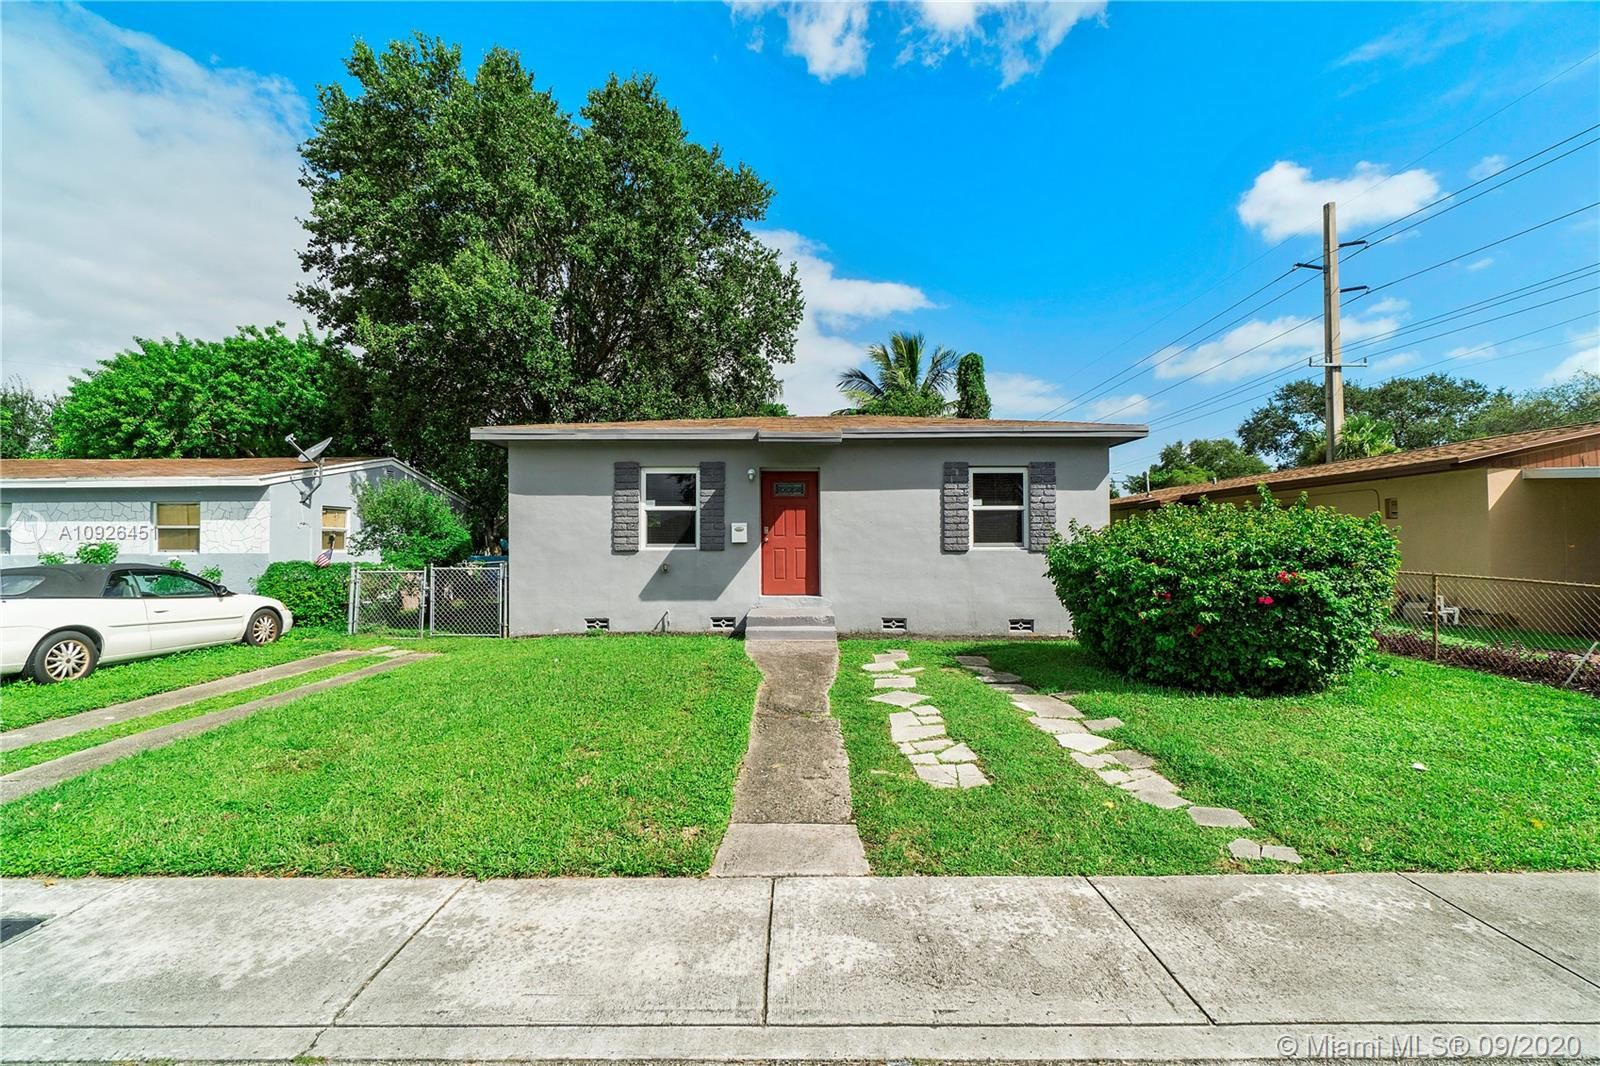 1591 NE 152nd St, North Miami Beach, FL 33162 - #: A10926451